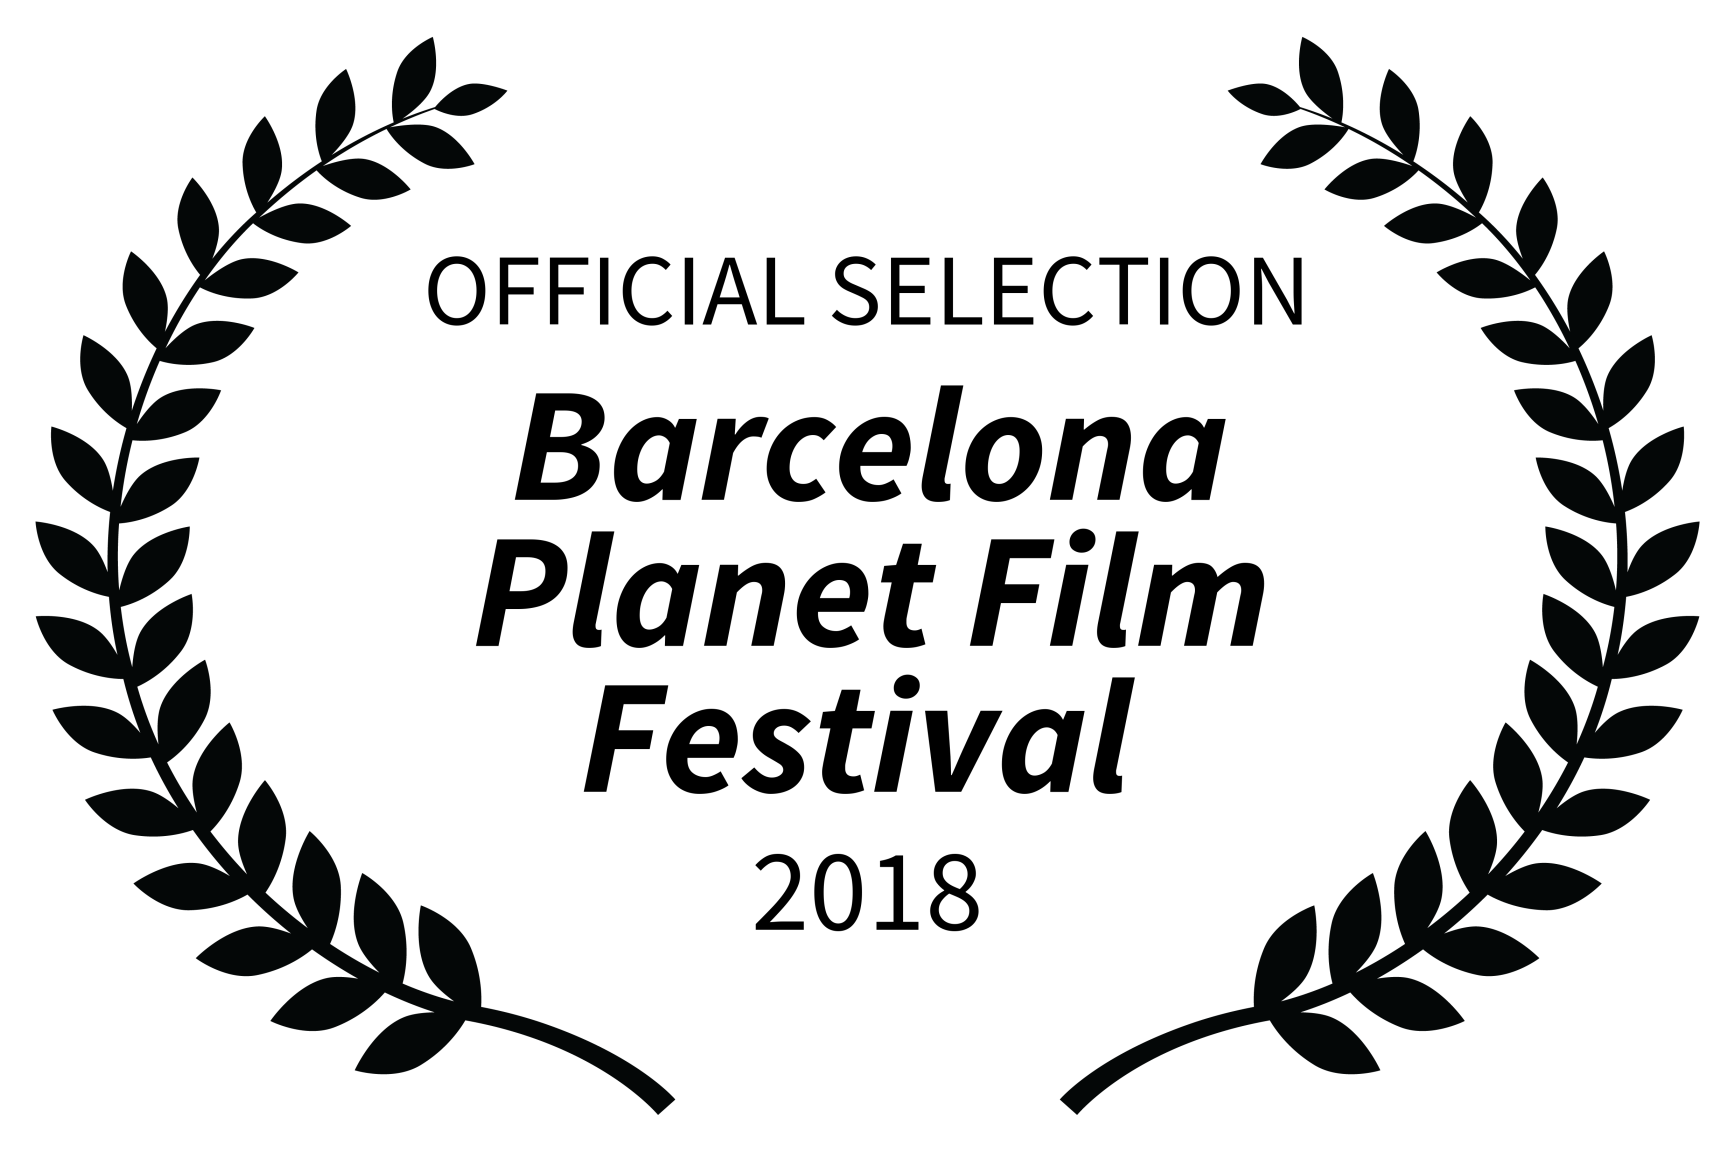 OFFICIAL SELECTION - Barcelona Planet Film Festival - 2018